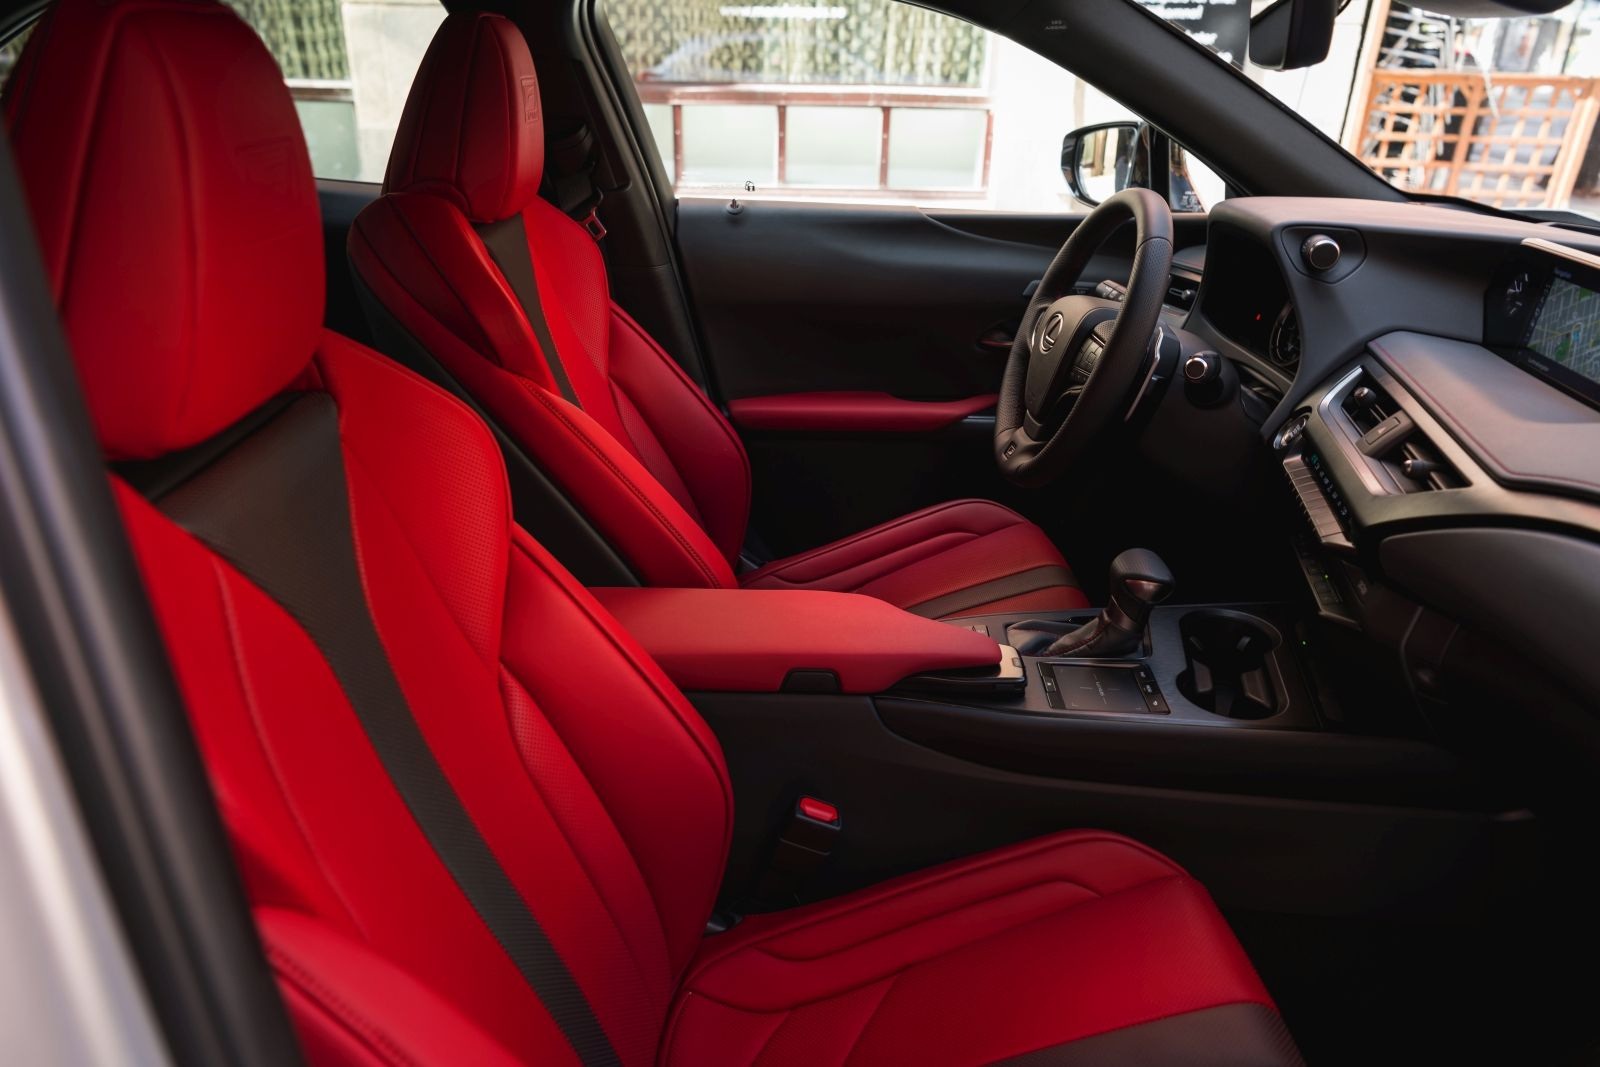 The Flare Red Interior Of The 2019 Lexus Ux200 Fsport Excites In The True Tradition Of The F Mark Red Interiors My Dream Car Lexus Cars